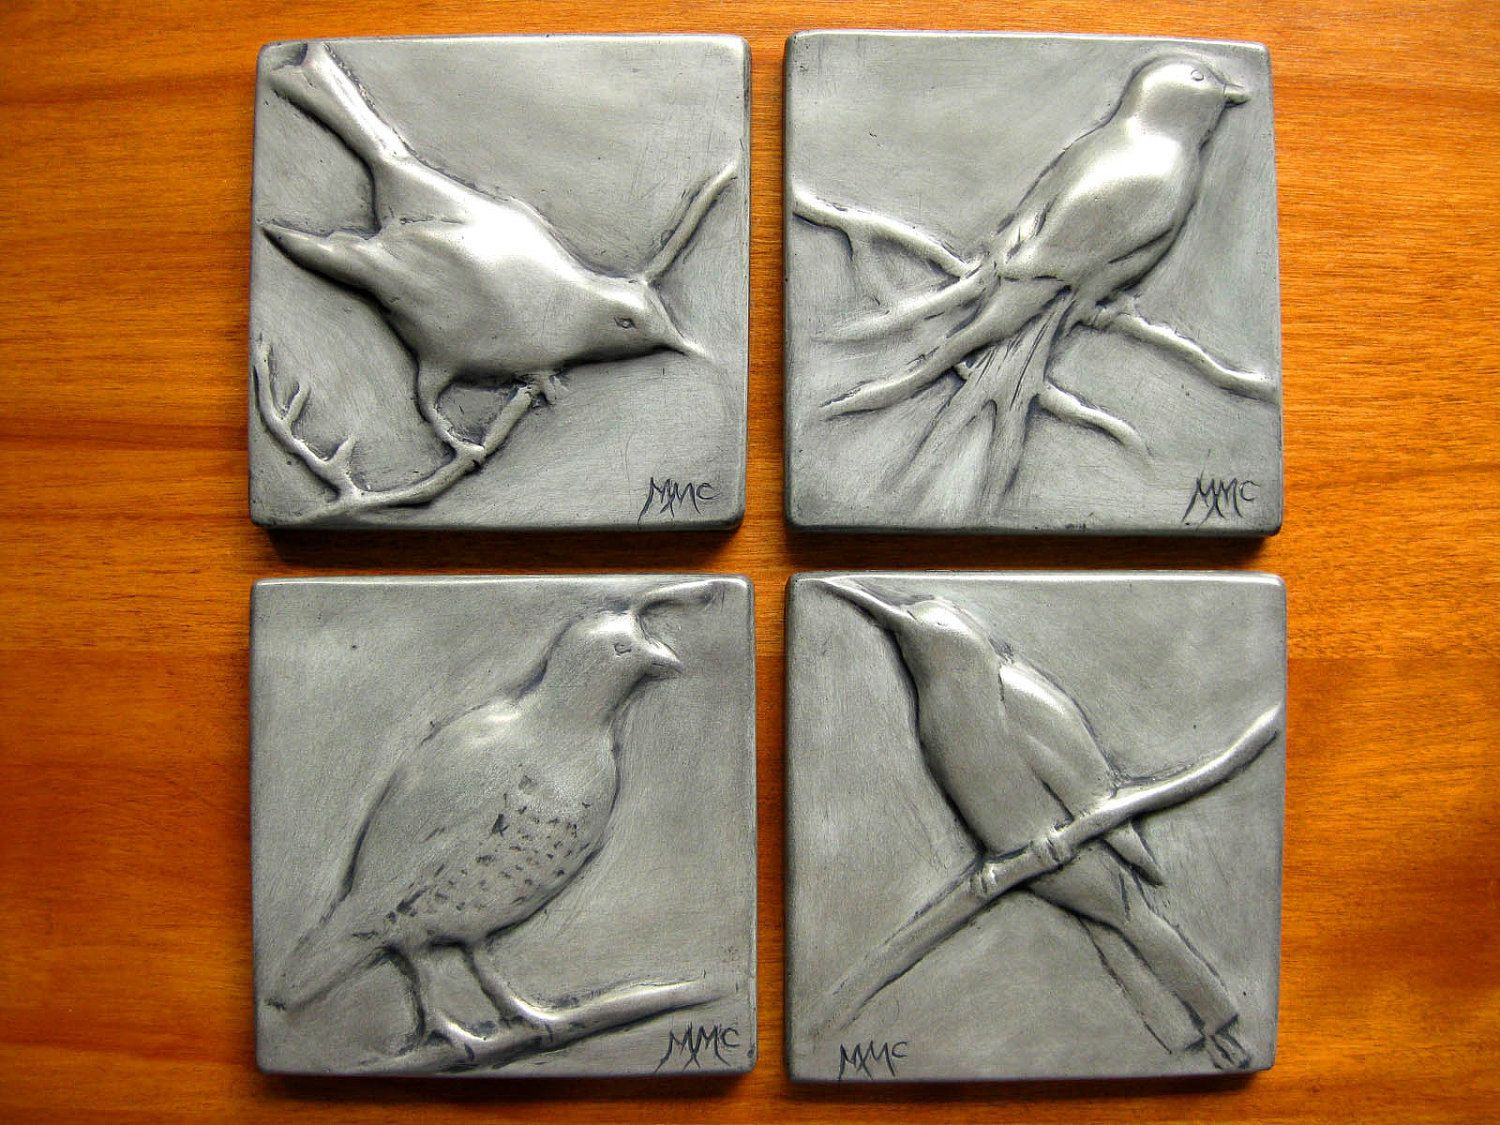 Nickel songbird or quail bas relief tile your choice of one 4 x 4 nickel songbird or quail bas relief tile your choice of one 4 x 4 dailygadgetfo Image collections